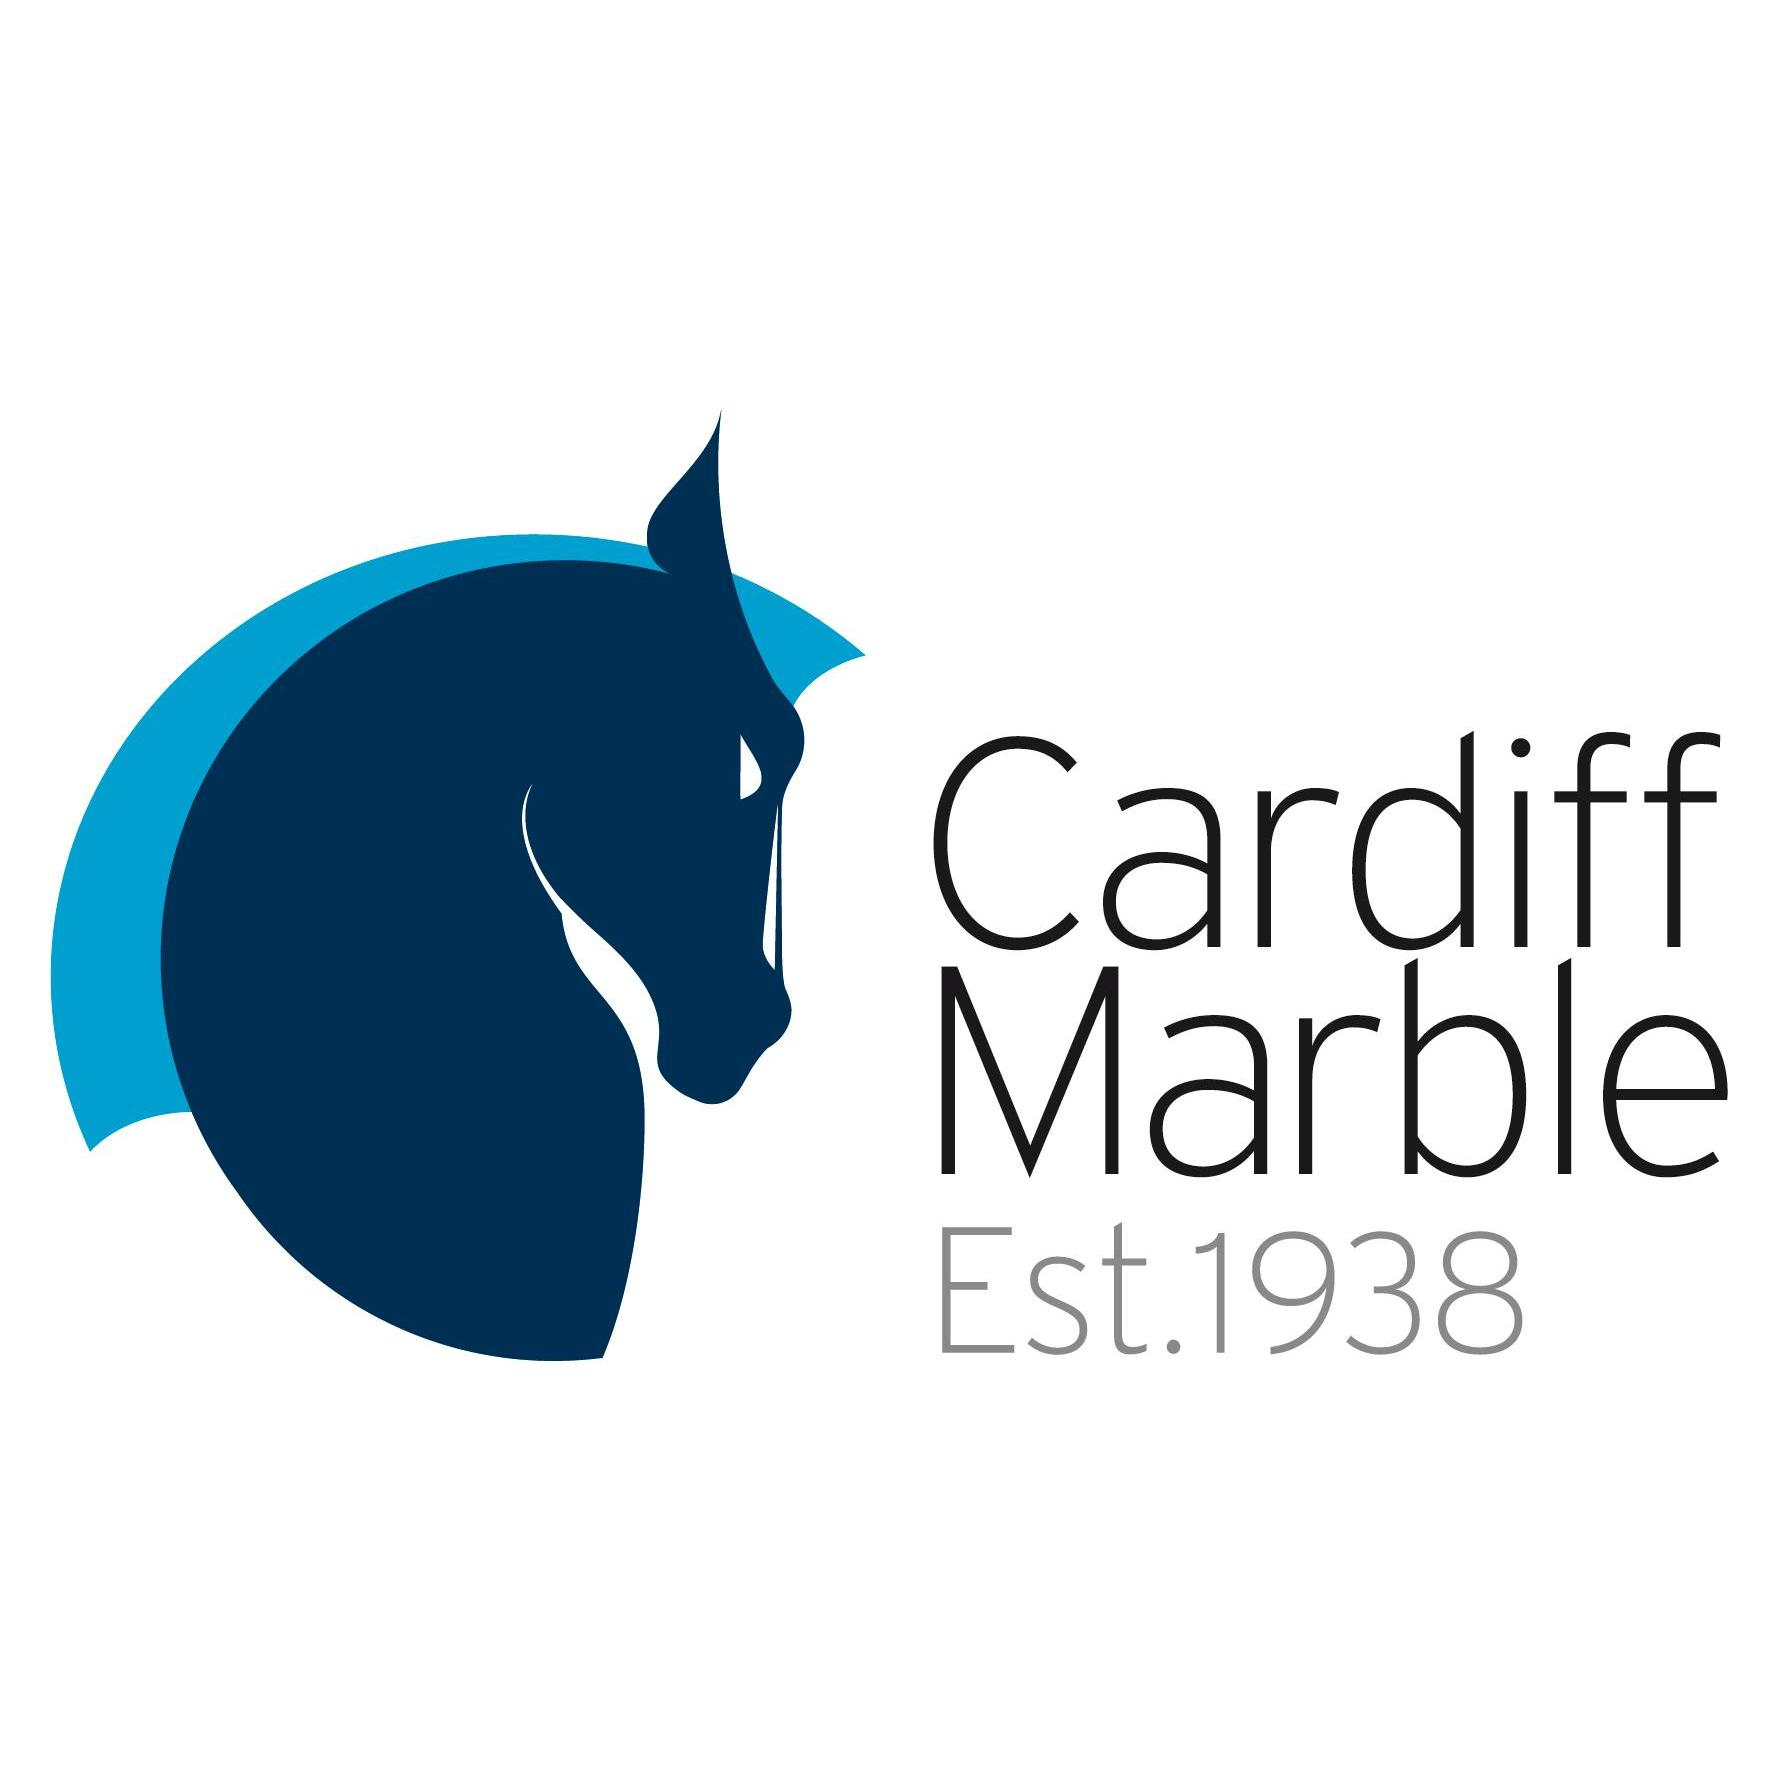 Cardiff Marble